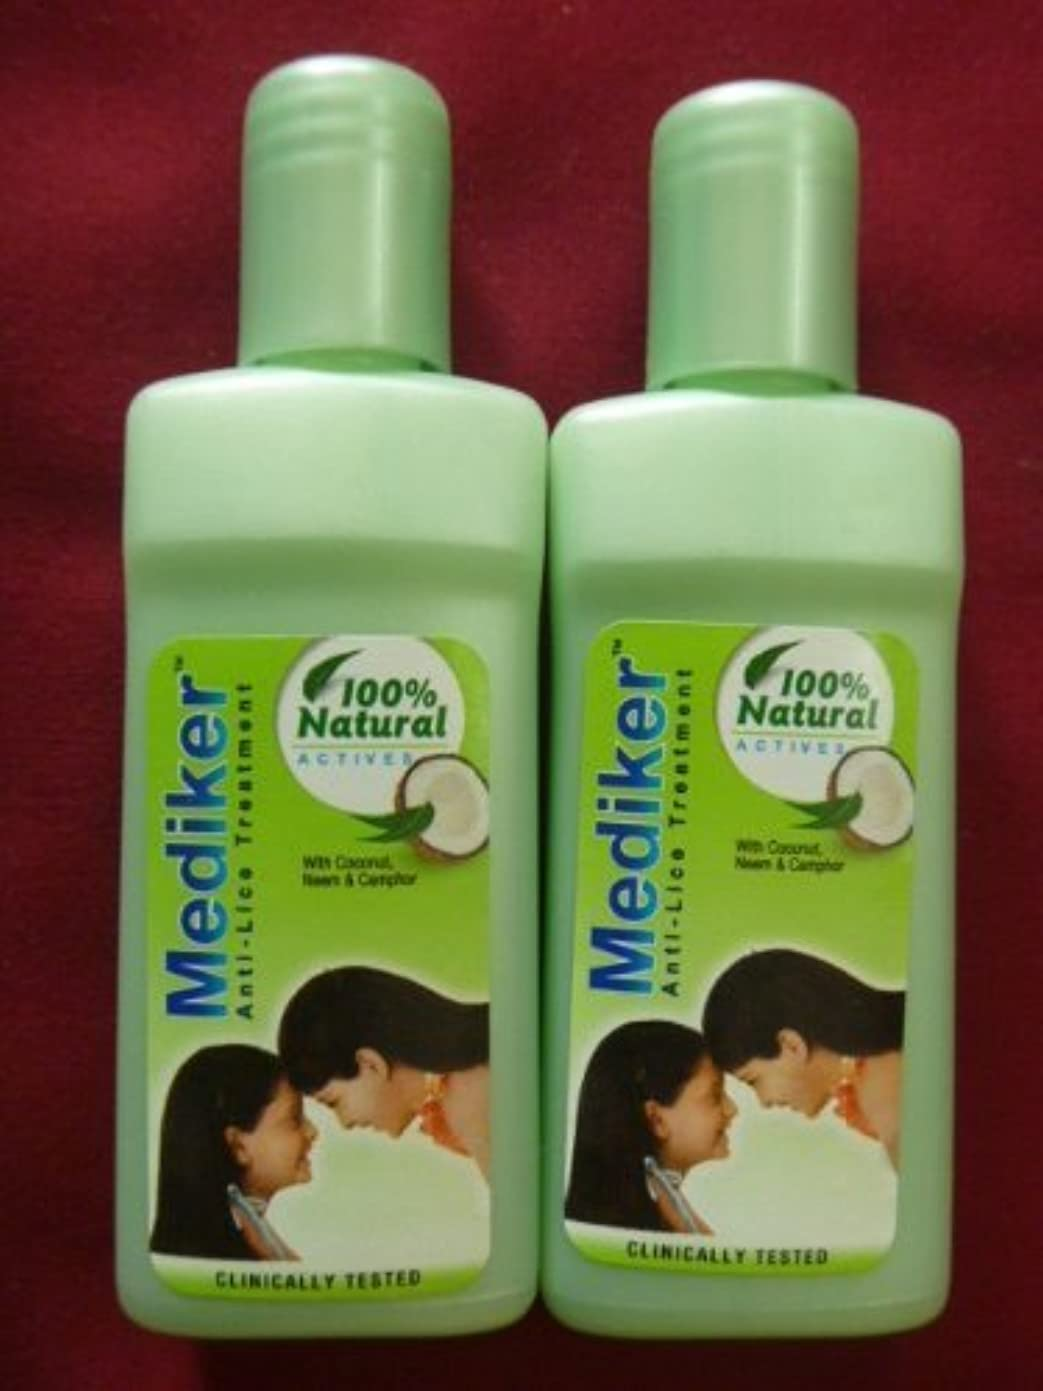 知的スプレークライストチャーチ2 X Mediker Anti Lice Remover Treatment Head Shampoo 100% Lice Remove 50ml X 2 = 100ml by Mediker [並行輸入品]